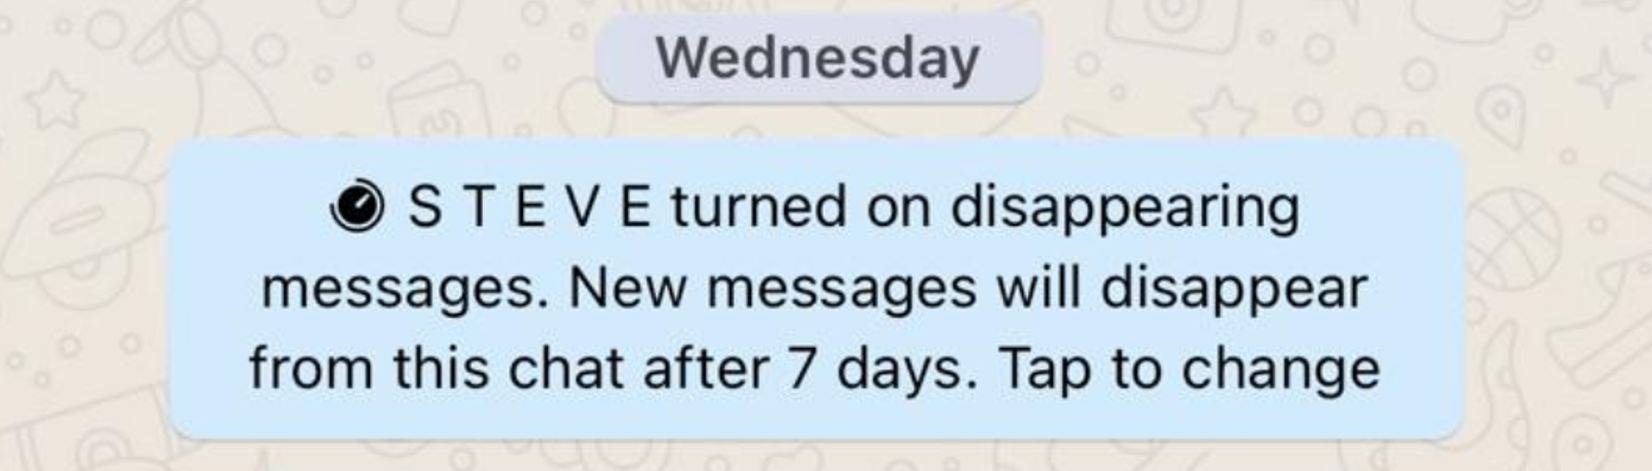 Disappearing Messages on WhatsApp: Everything You Need to Know